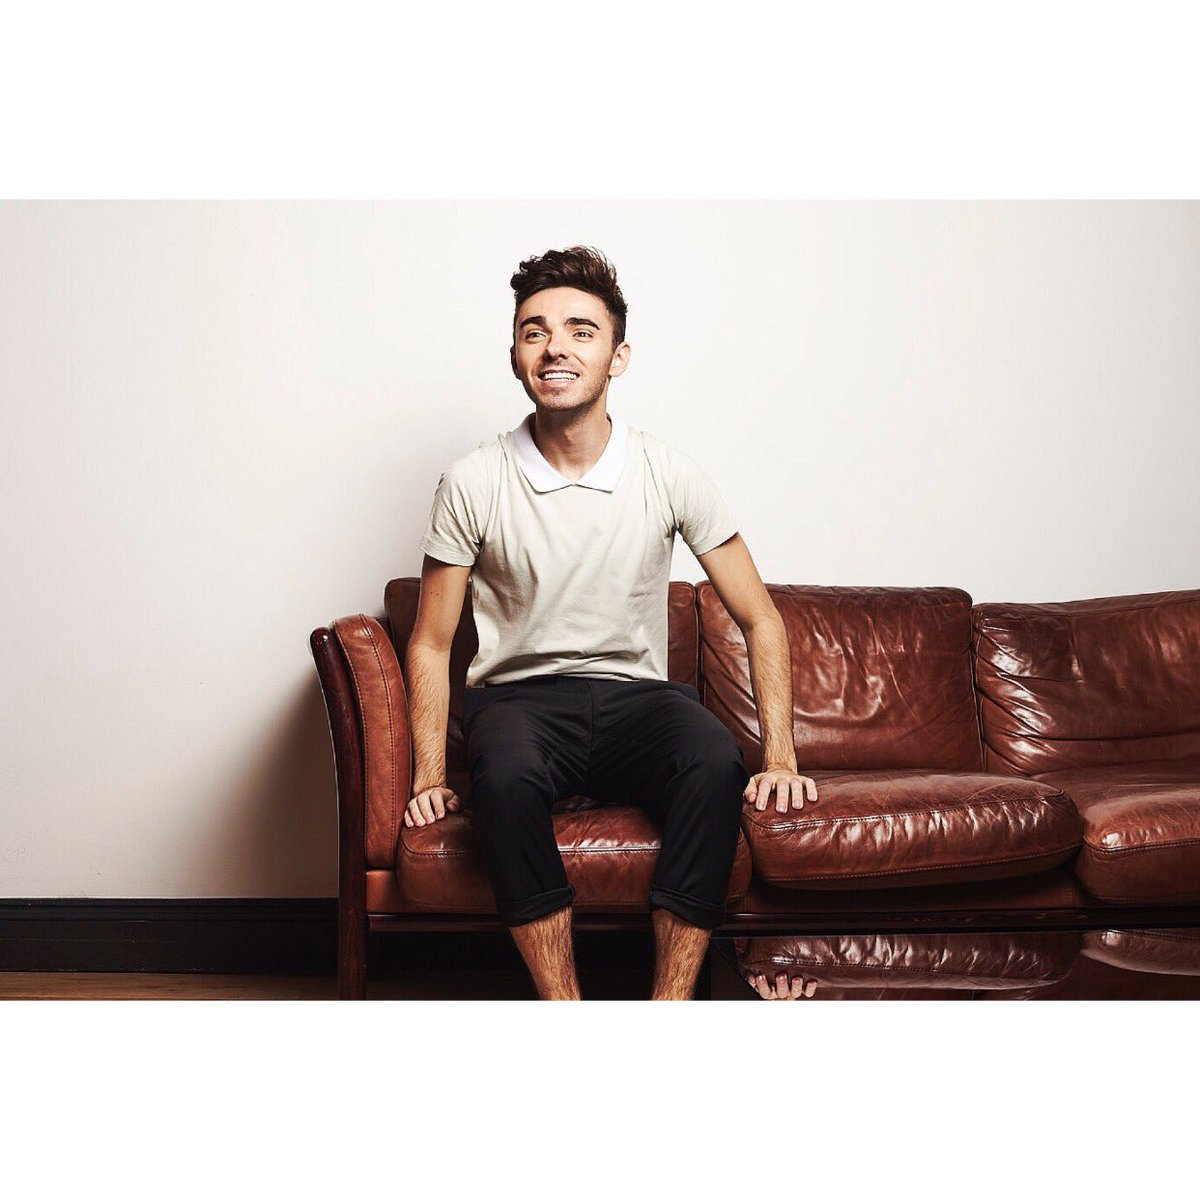 Here's an outtake from the calendar shoot! Literally a couple of calendars left so if you haven't got yourself one, you will find it on my merch page (if you want one) nathansykes.livenationmerch.com/calendars/offi…